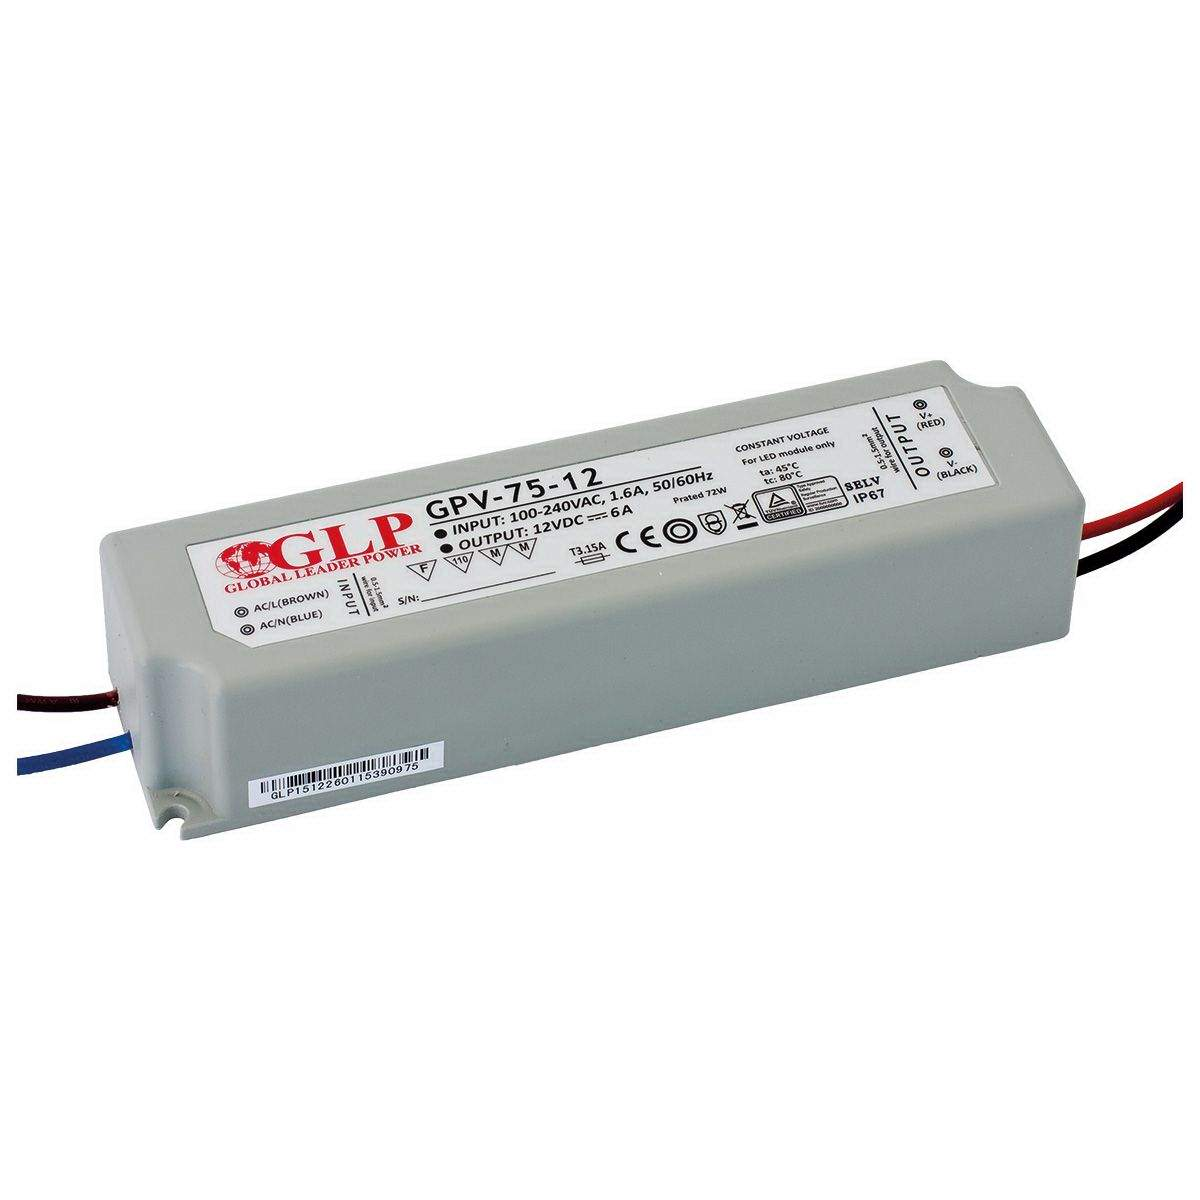 LED power supply unit LED power supply unit GLP POWER 12V DC GPV-75-12  72W  IP67